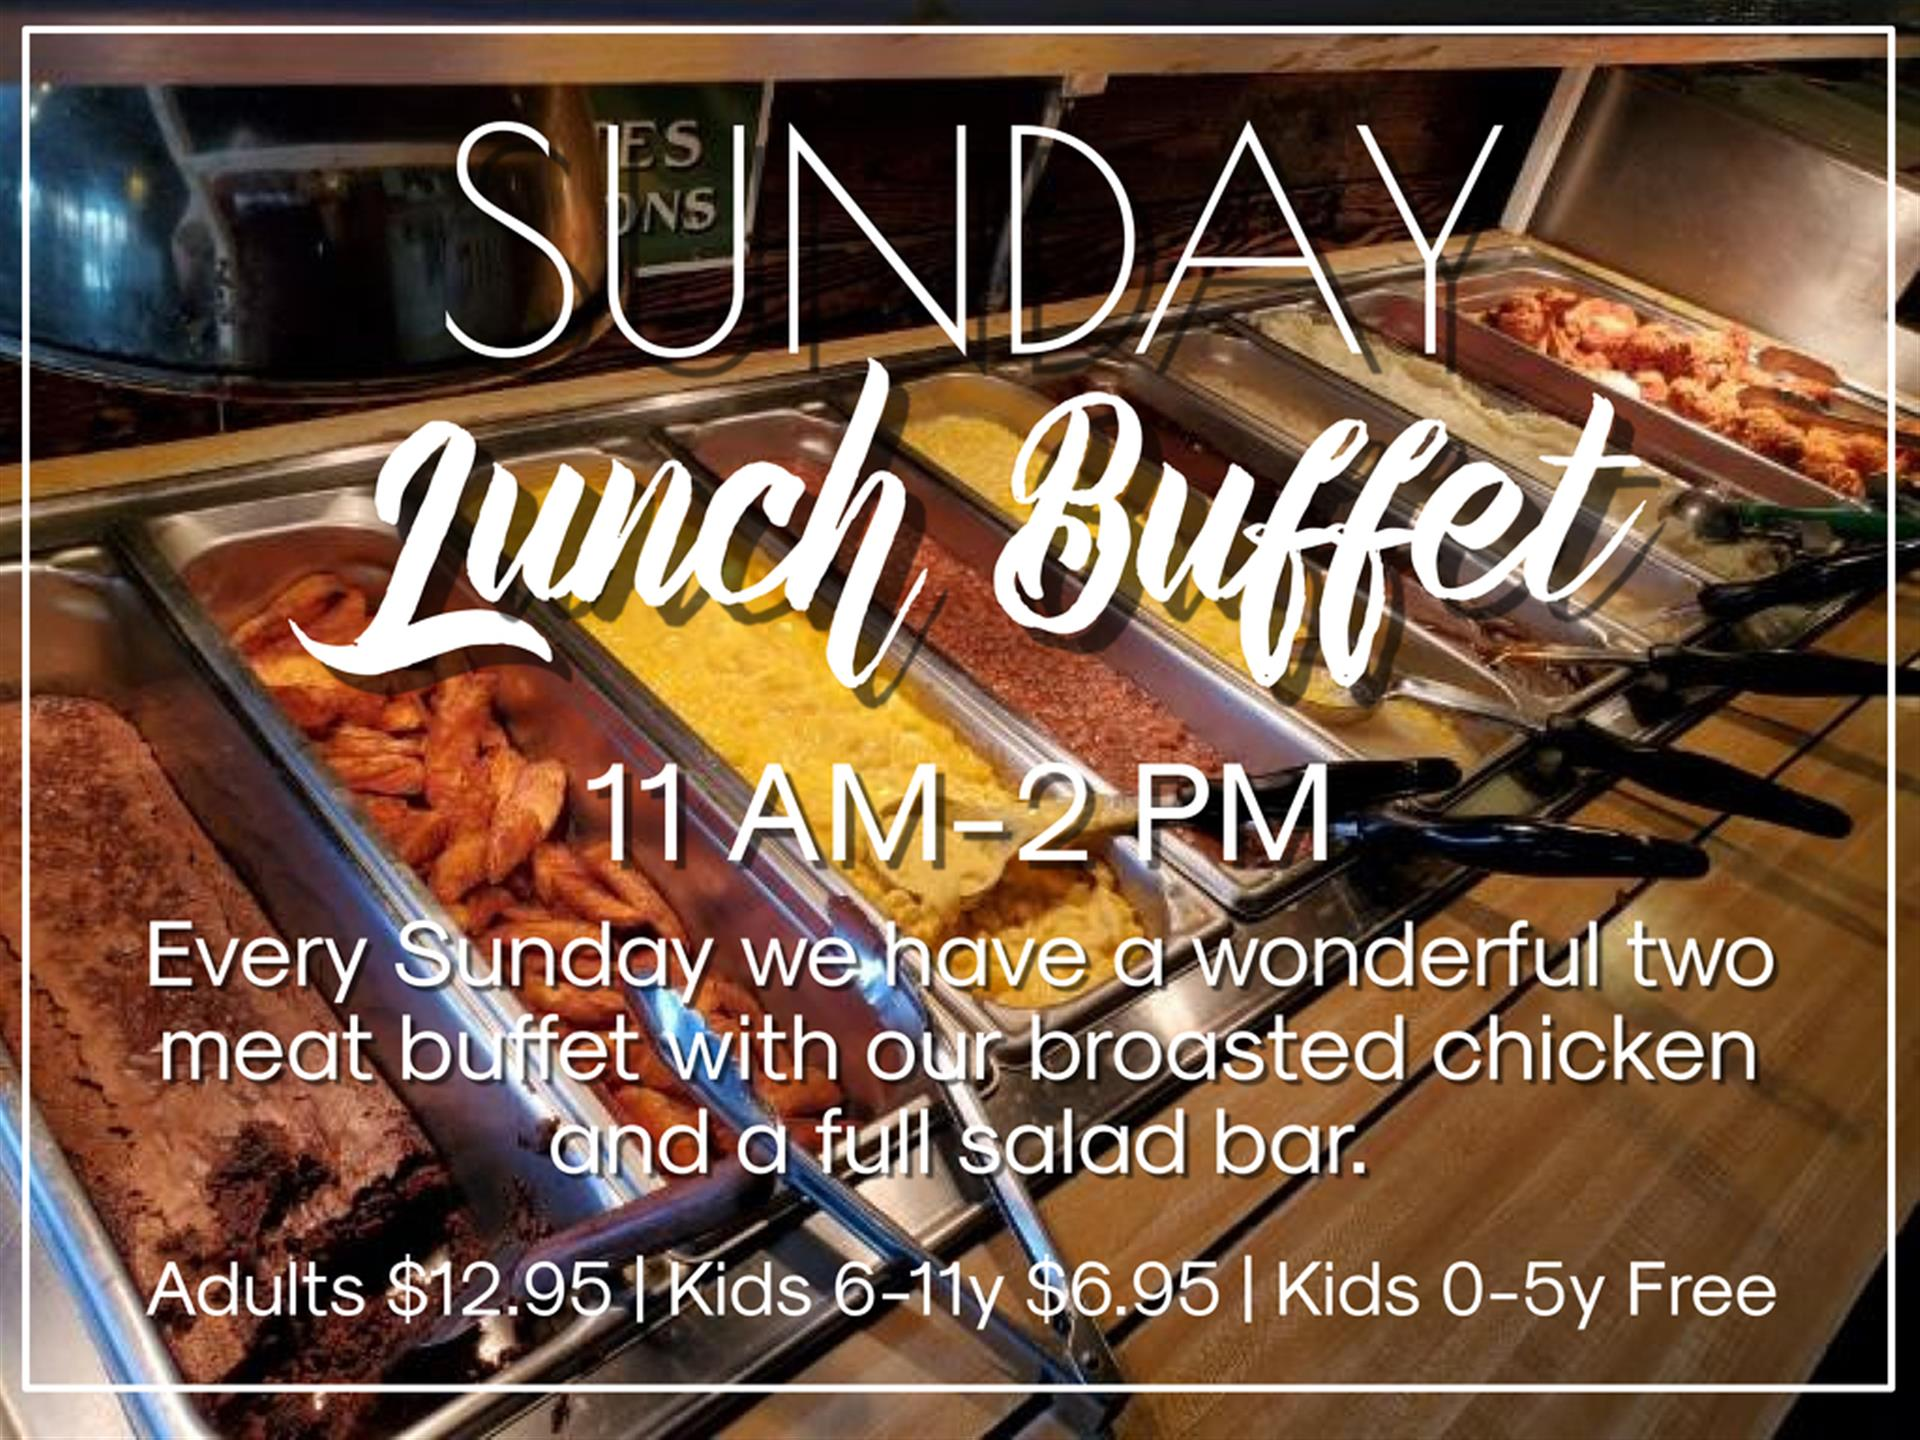 Sunday lunch Buffet 2 meat buffet including Broasted Chicken and full Salad Bar